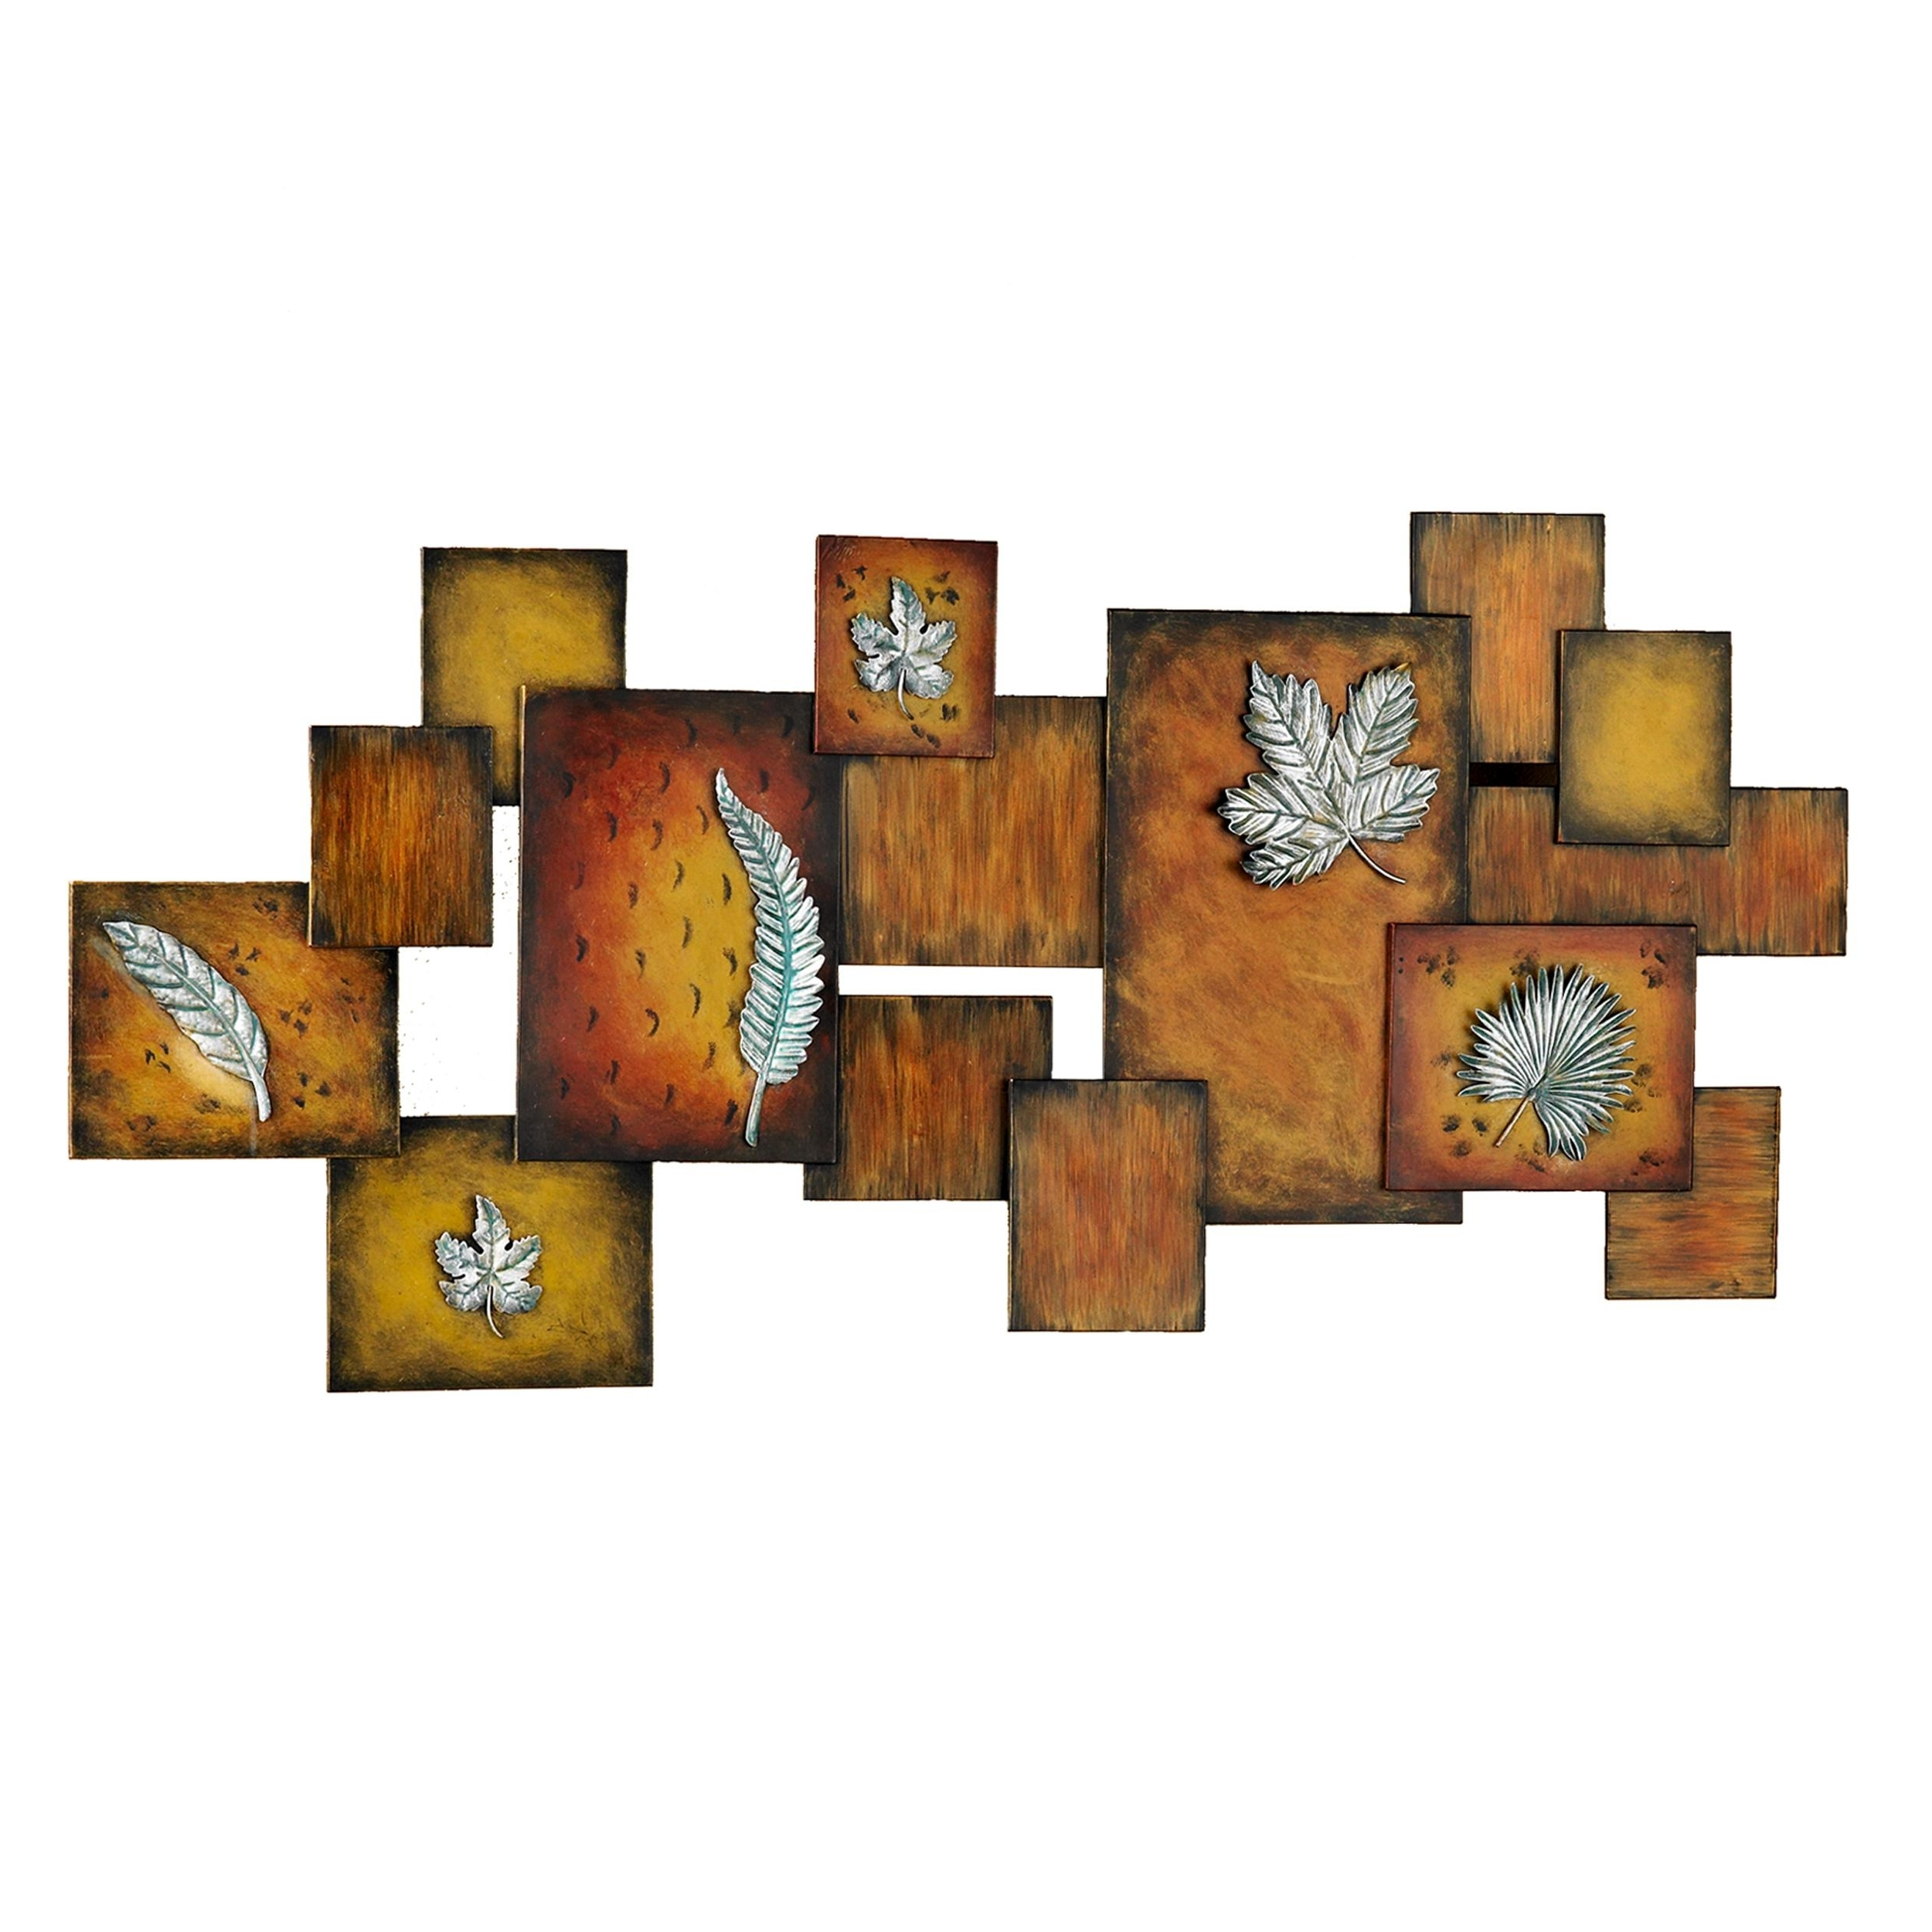 Widely Used Abstract Metal Wall Art Panels In Amazon: Southern Enterprises Faux Fossil Leaves Abstract Wall (View 12 of 15)